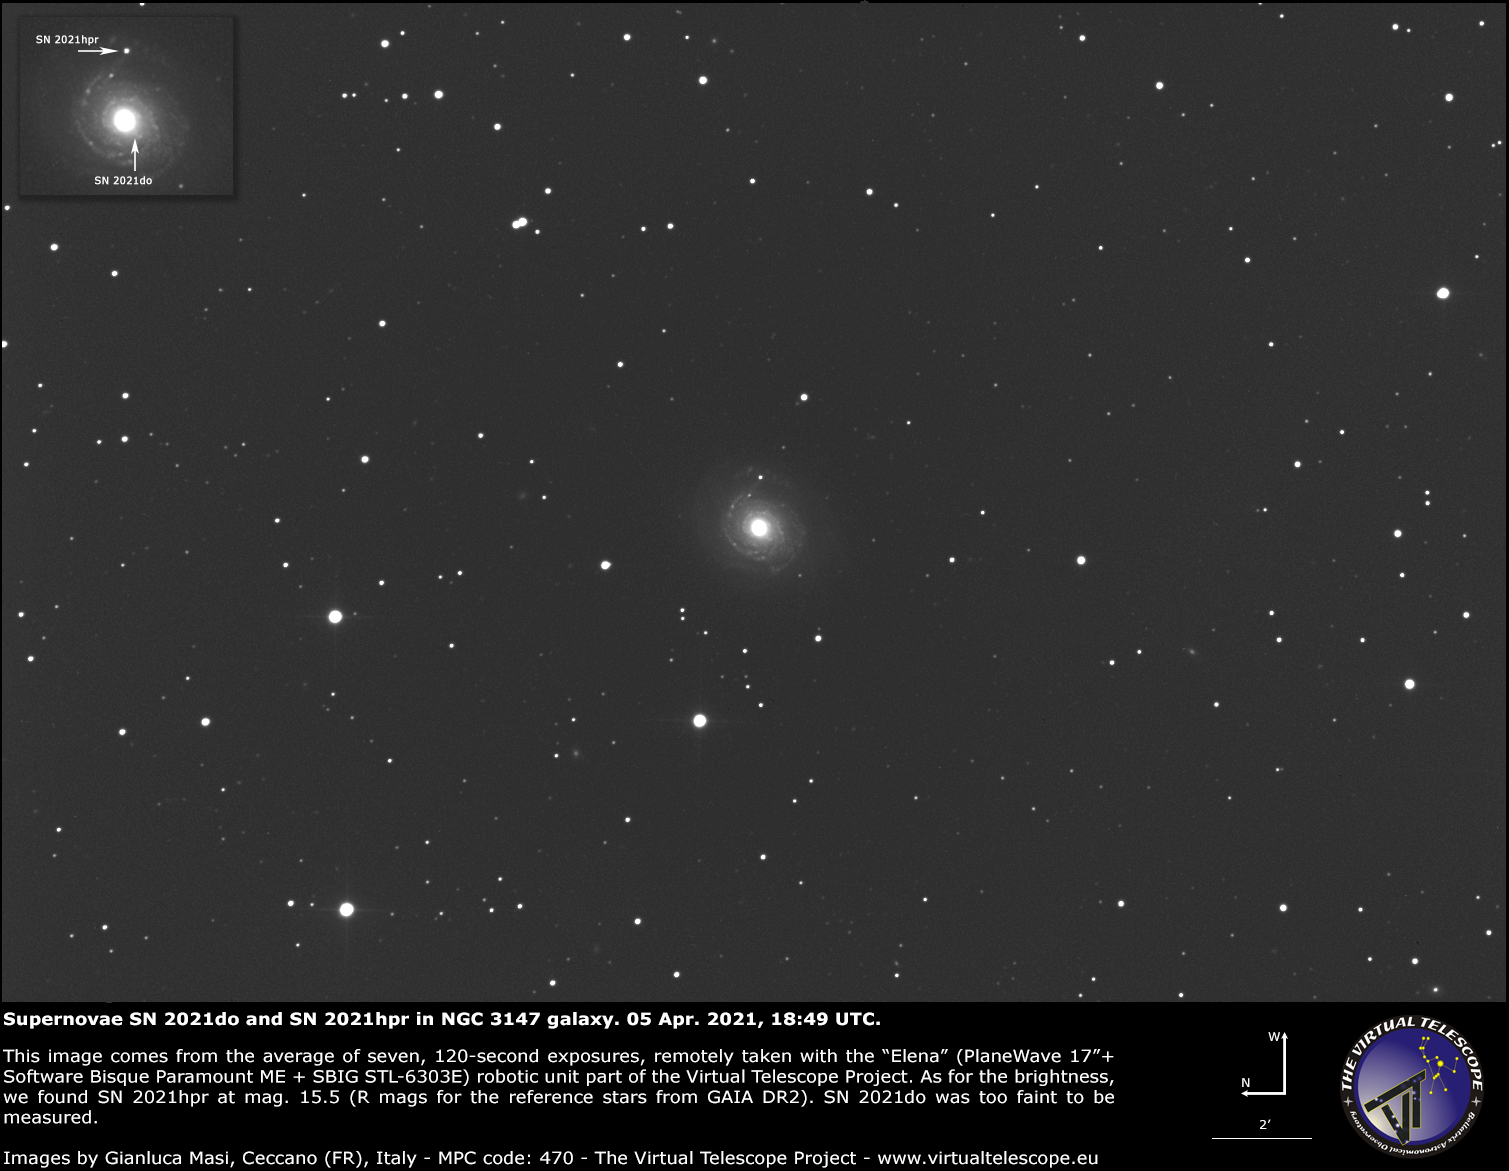 Supernovae SN 2021hpr and SN 2021do inNGC 3147 galaxy: 5 Apr. 2021.